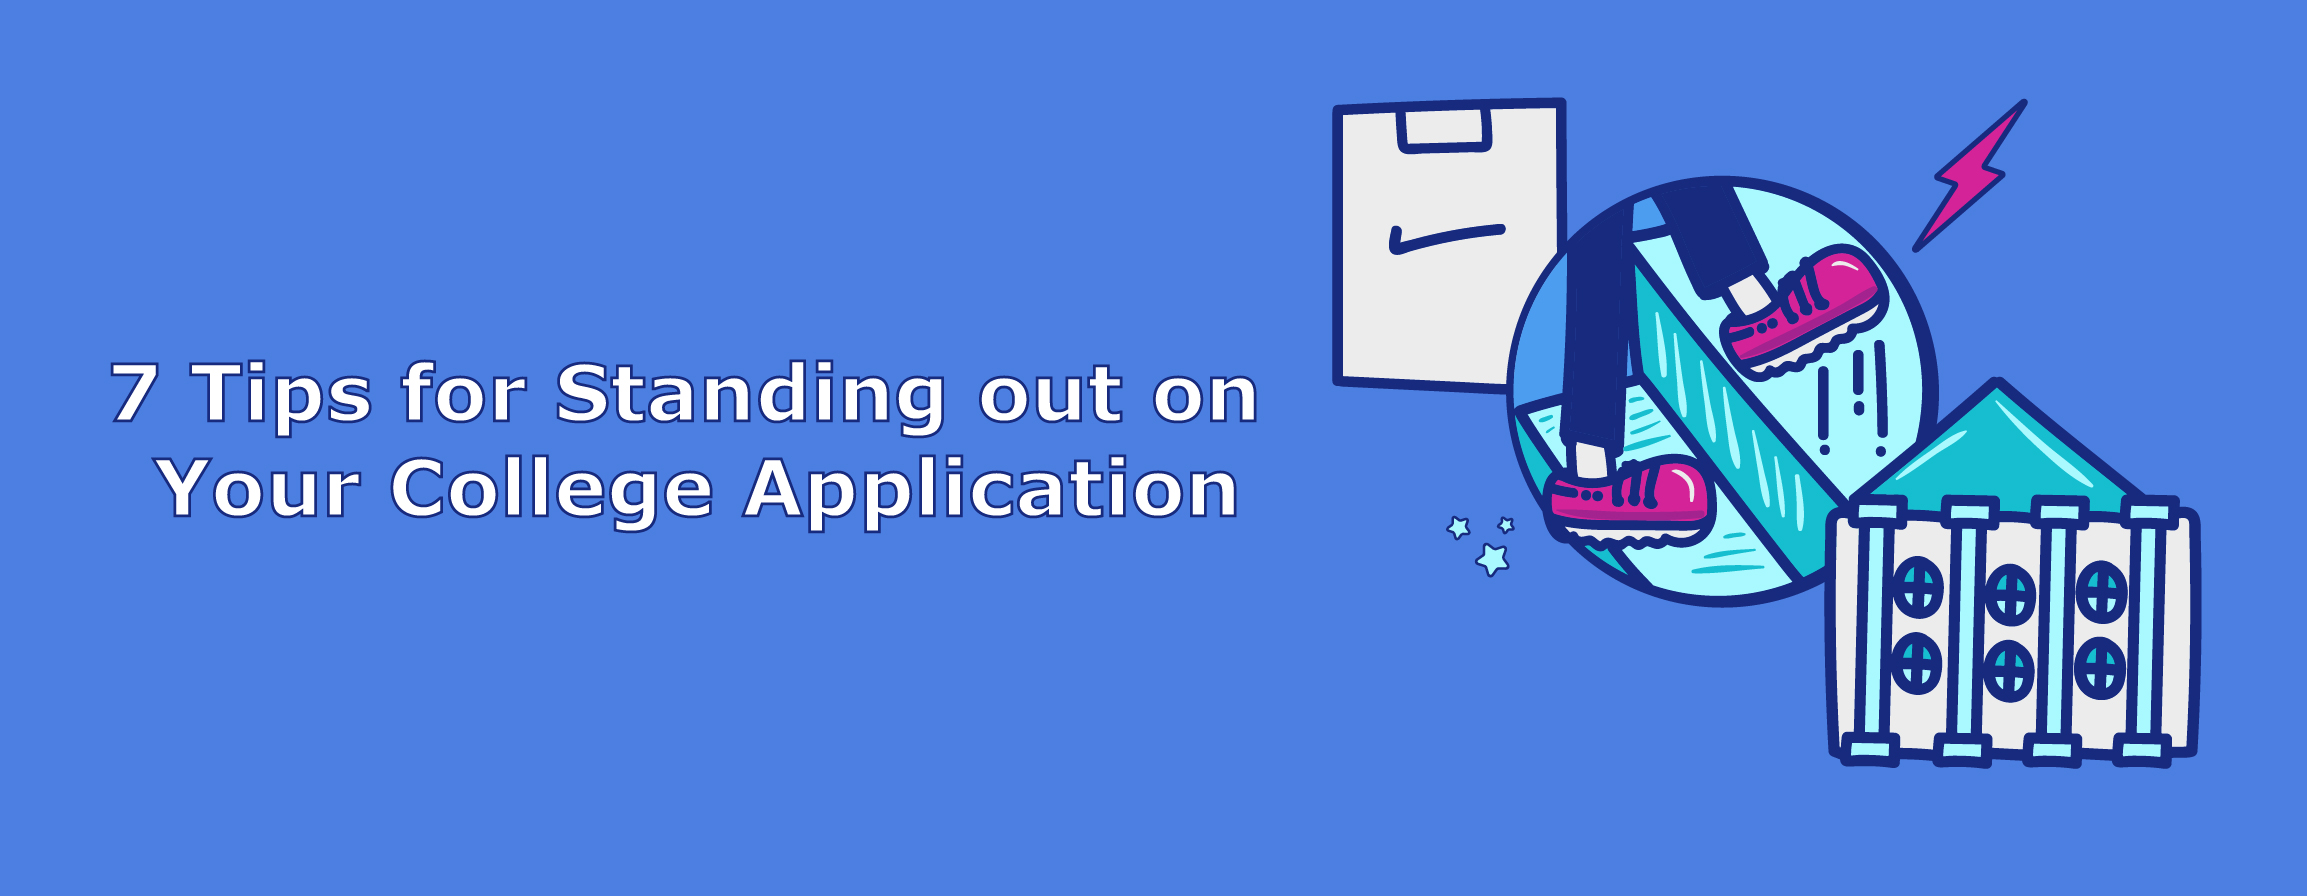 7 Tips for Standing out on Your College Application